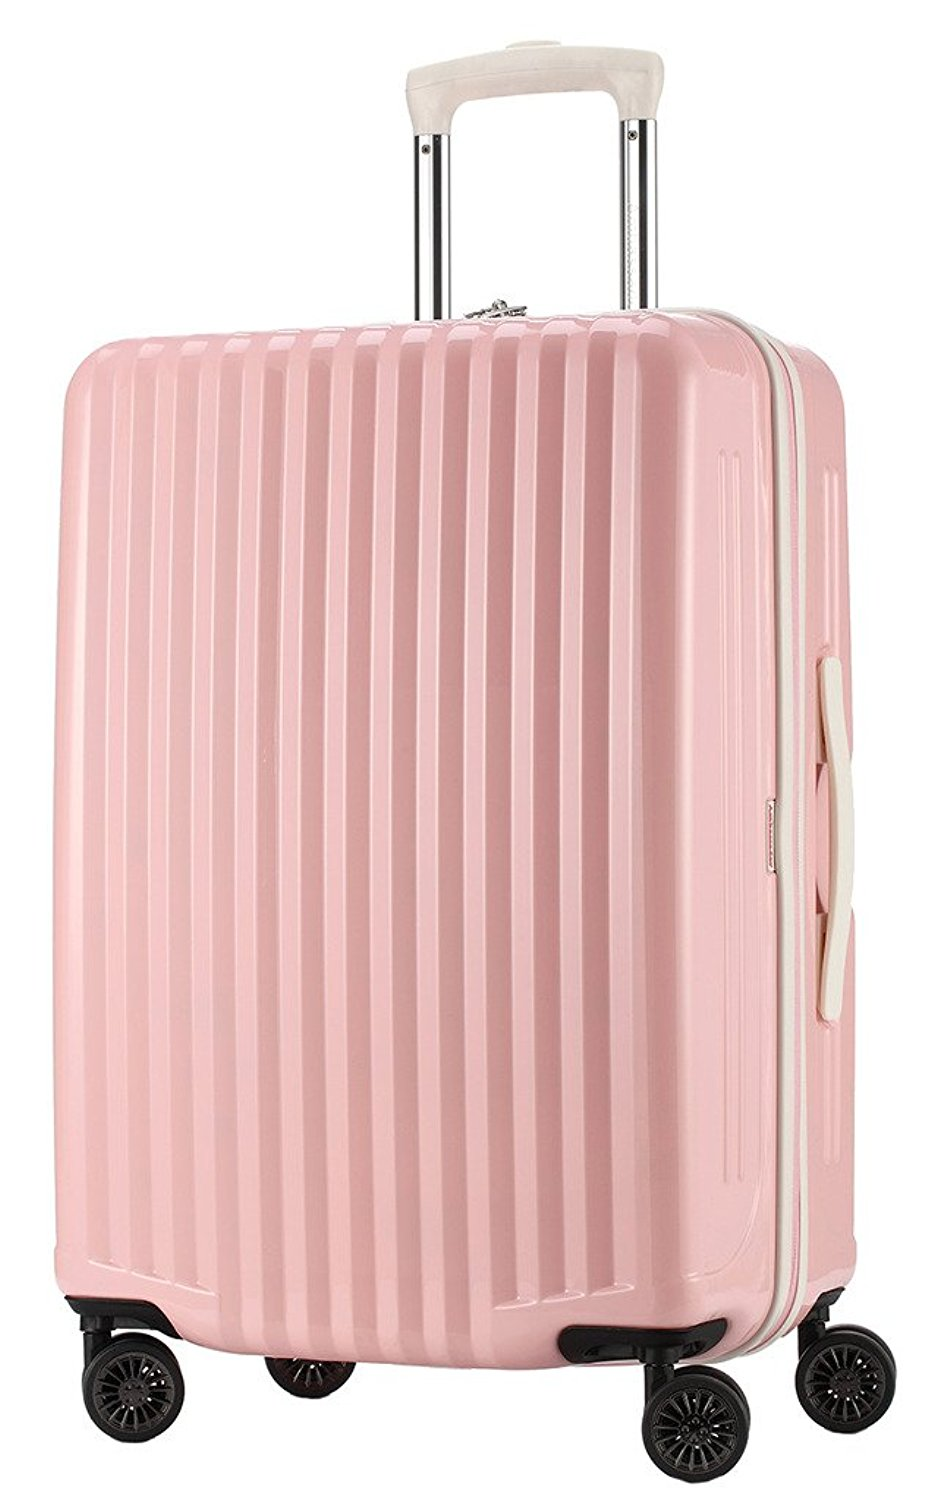 4a6338259b5 Cheap Polycarbonate Suitcase, find Polycarbonate Suitcase deals on ...